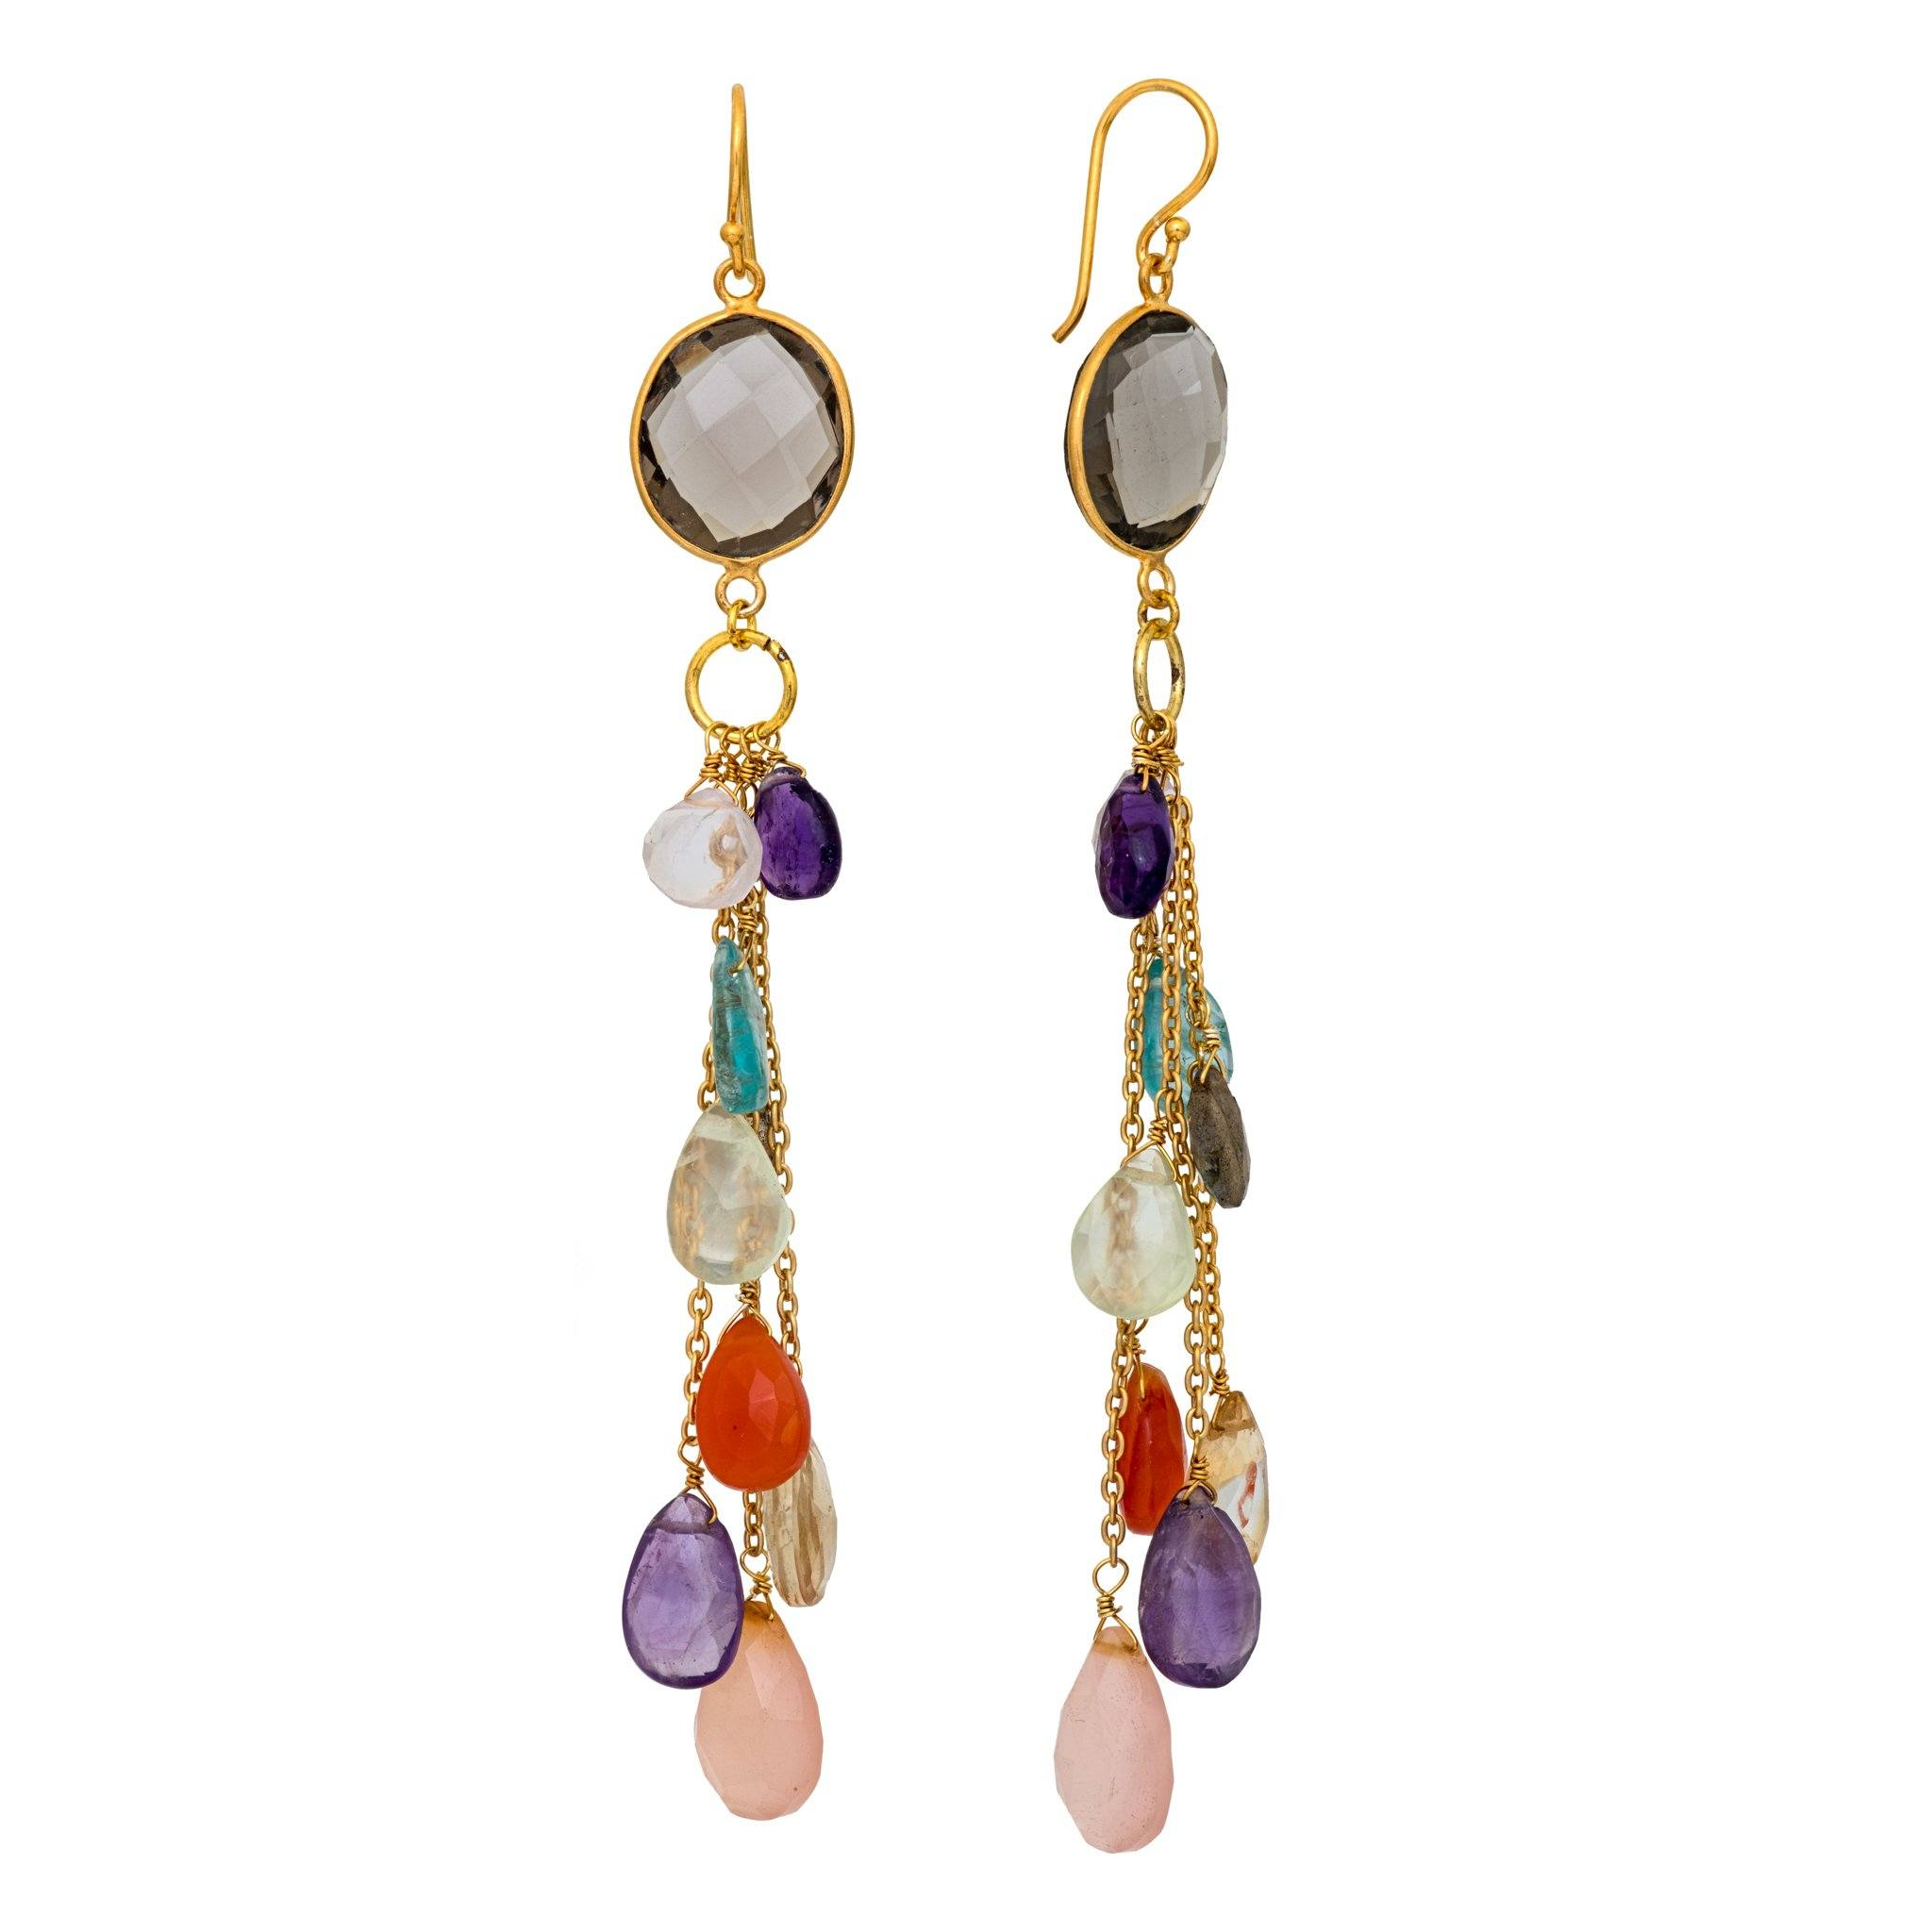 LUZ mix of quartz cluster long earrings - MadamSiam